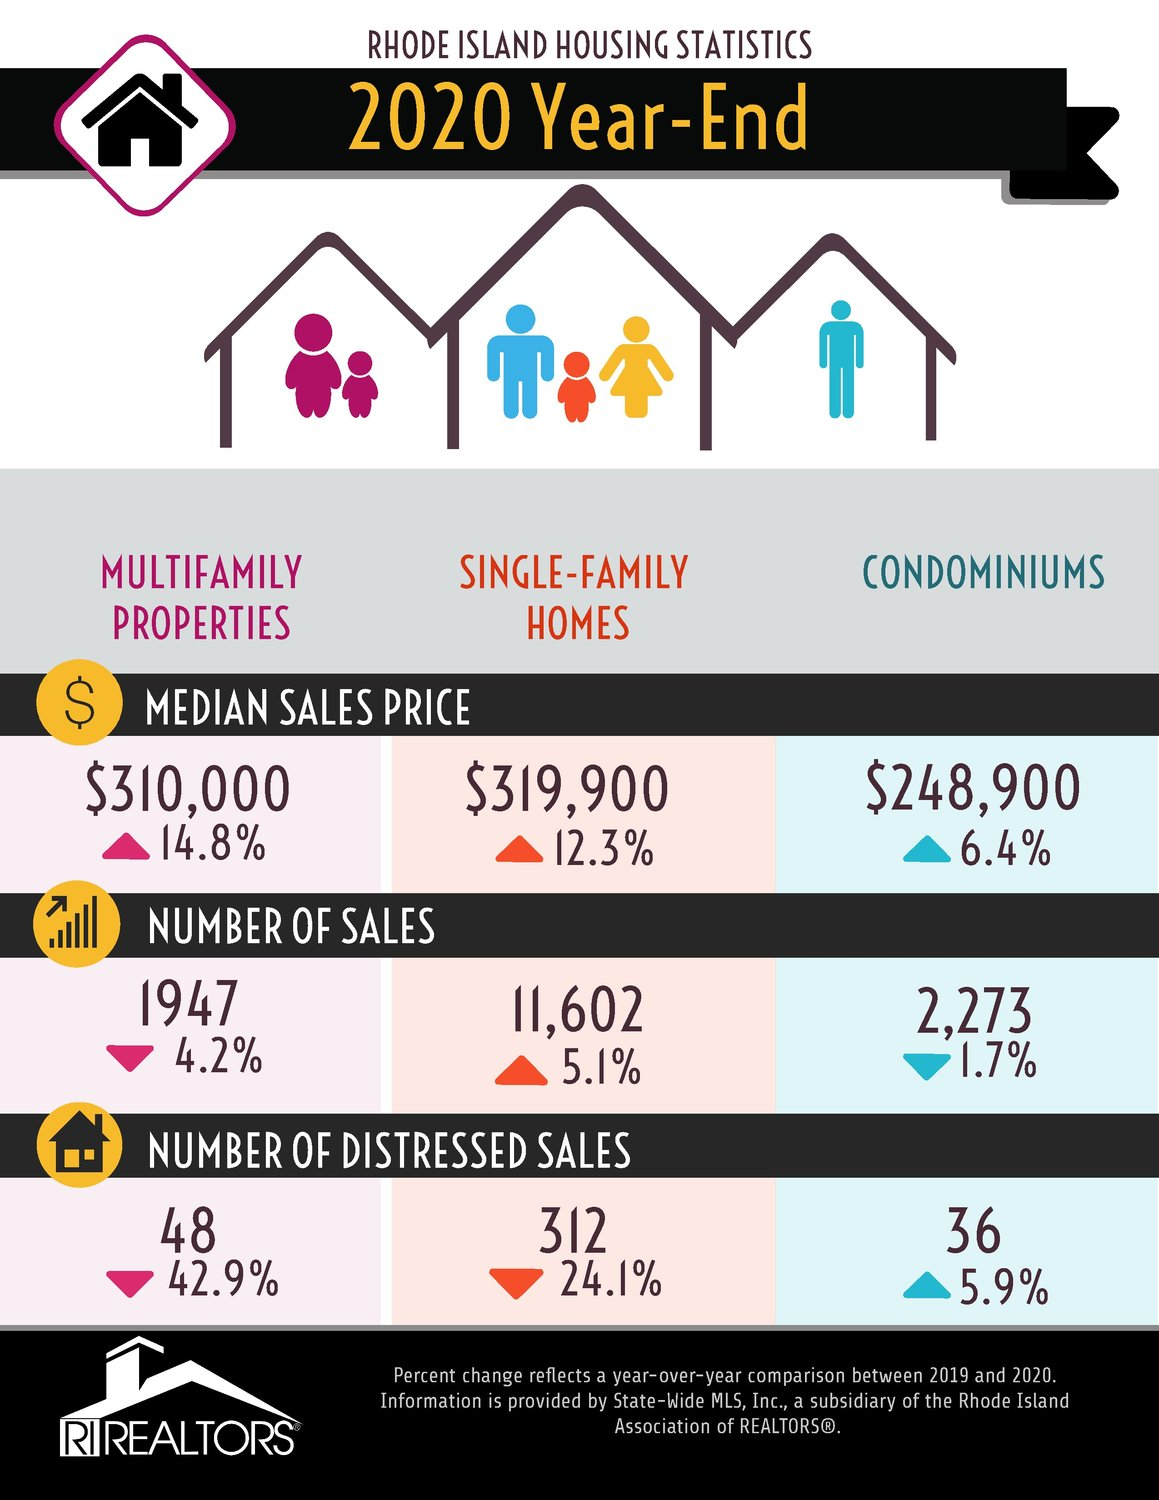 The price and volume of single-family home sales rose significantly in 2020, and prices rose in the other categories of multi-family and condominium sales as well. Note the decreases in the number of distressed sales — likely a result of banks being reluctant to initiate foreclosure actions against homeowners during the pandemic.